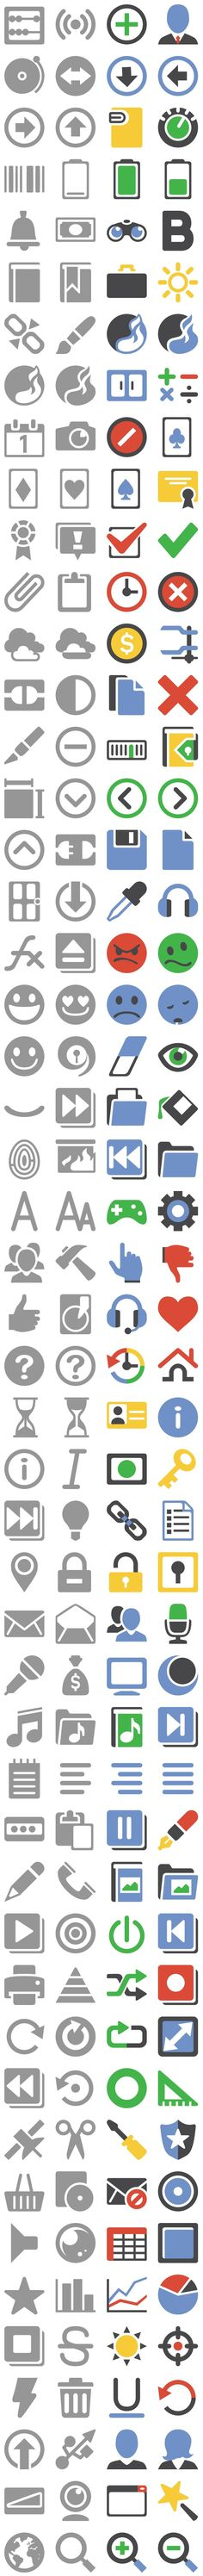 204 Google Plus interface icons, including several sizes. (pixel perfect) - Design Shock